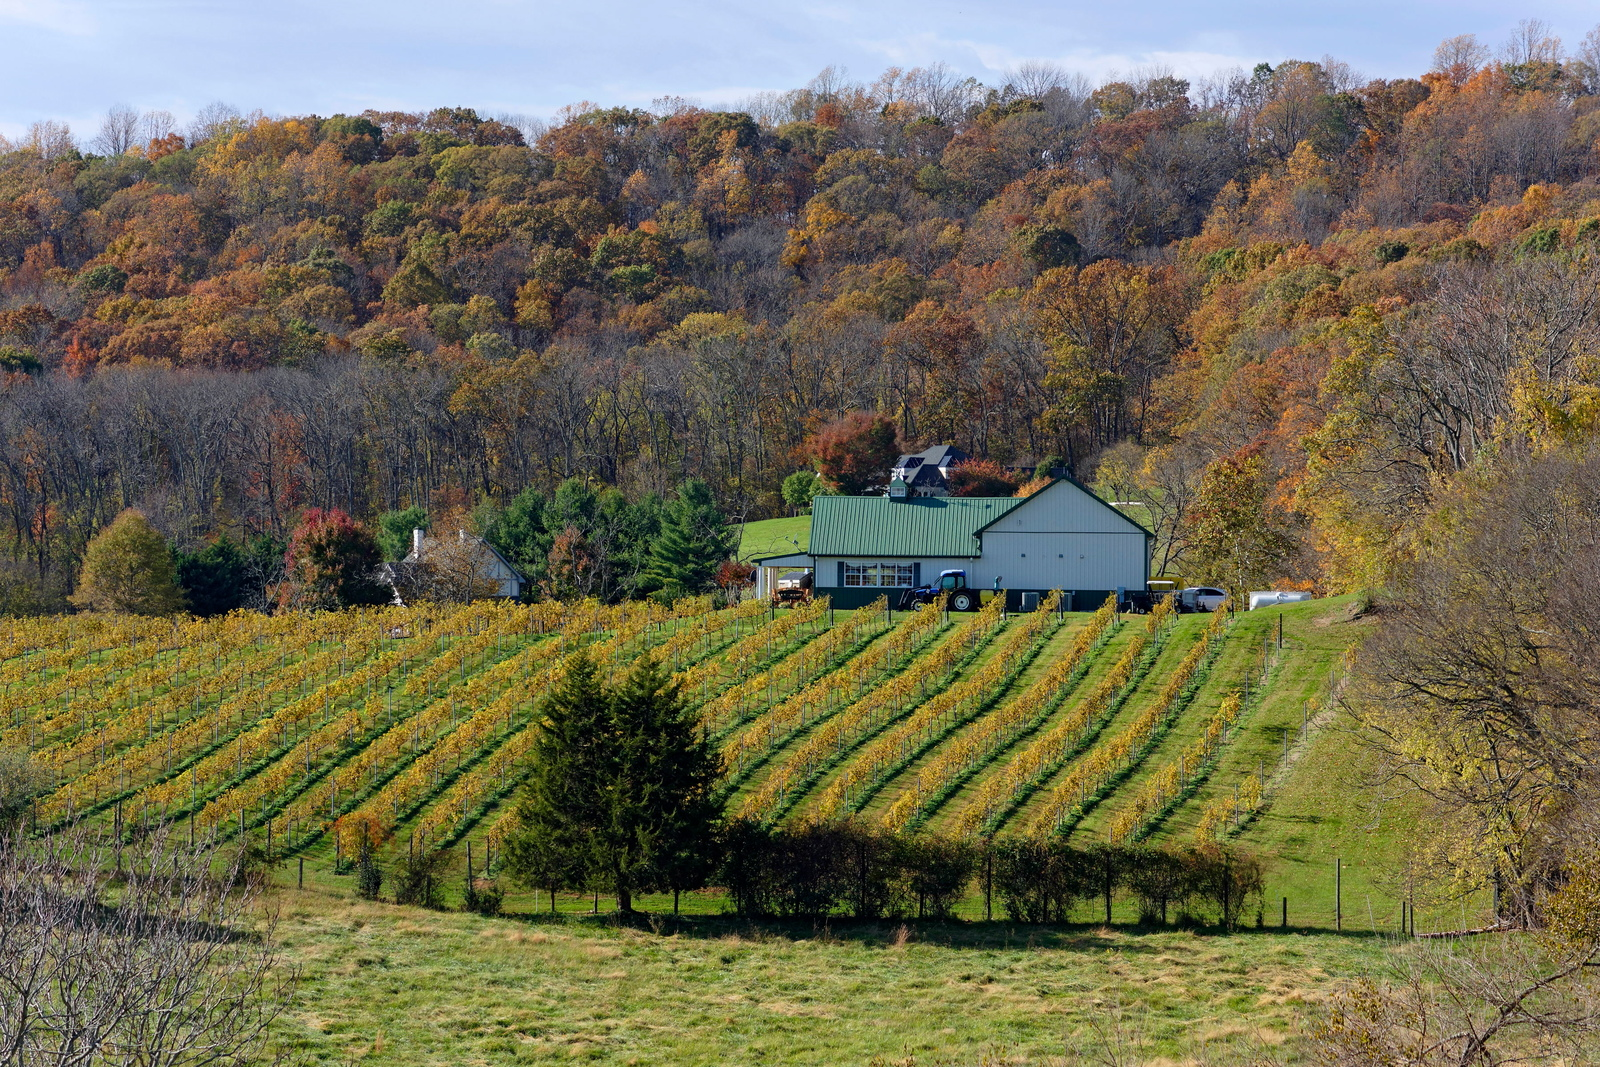 No other Washington-area destination offers the immaculate mountain-side views and rolling hills like Fauquier County.